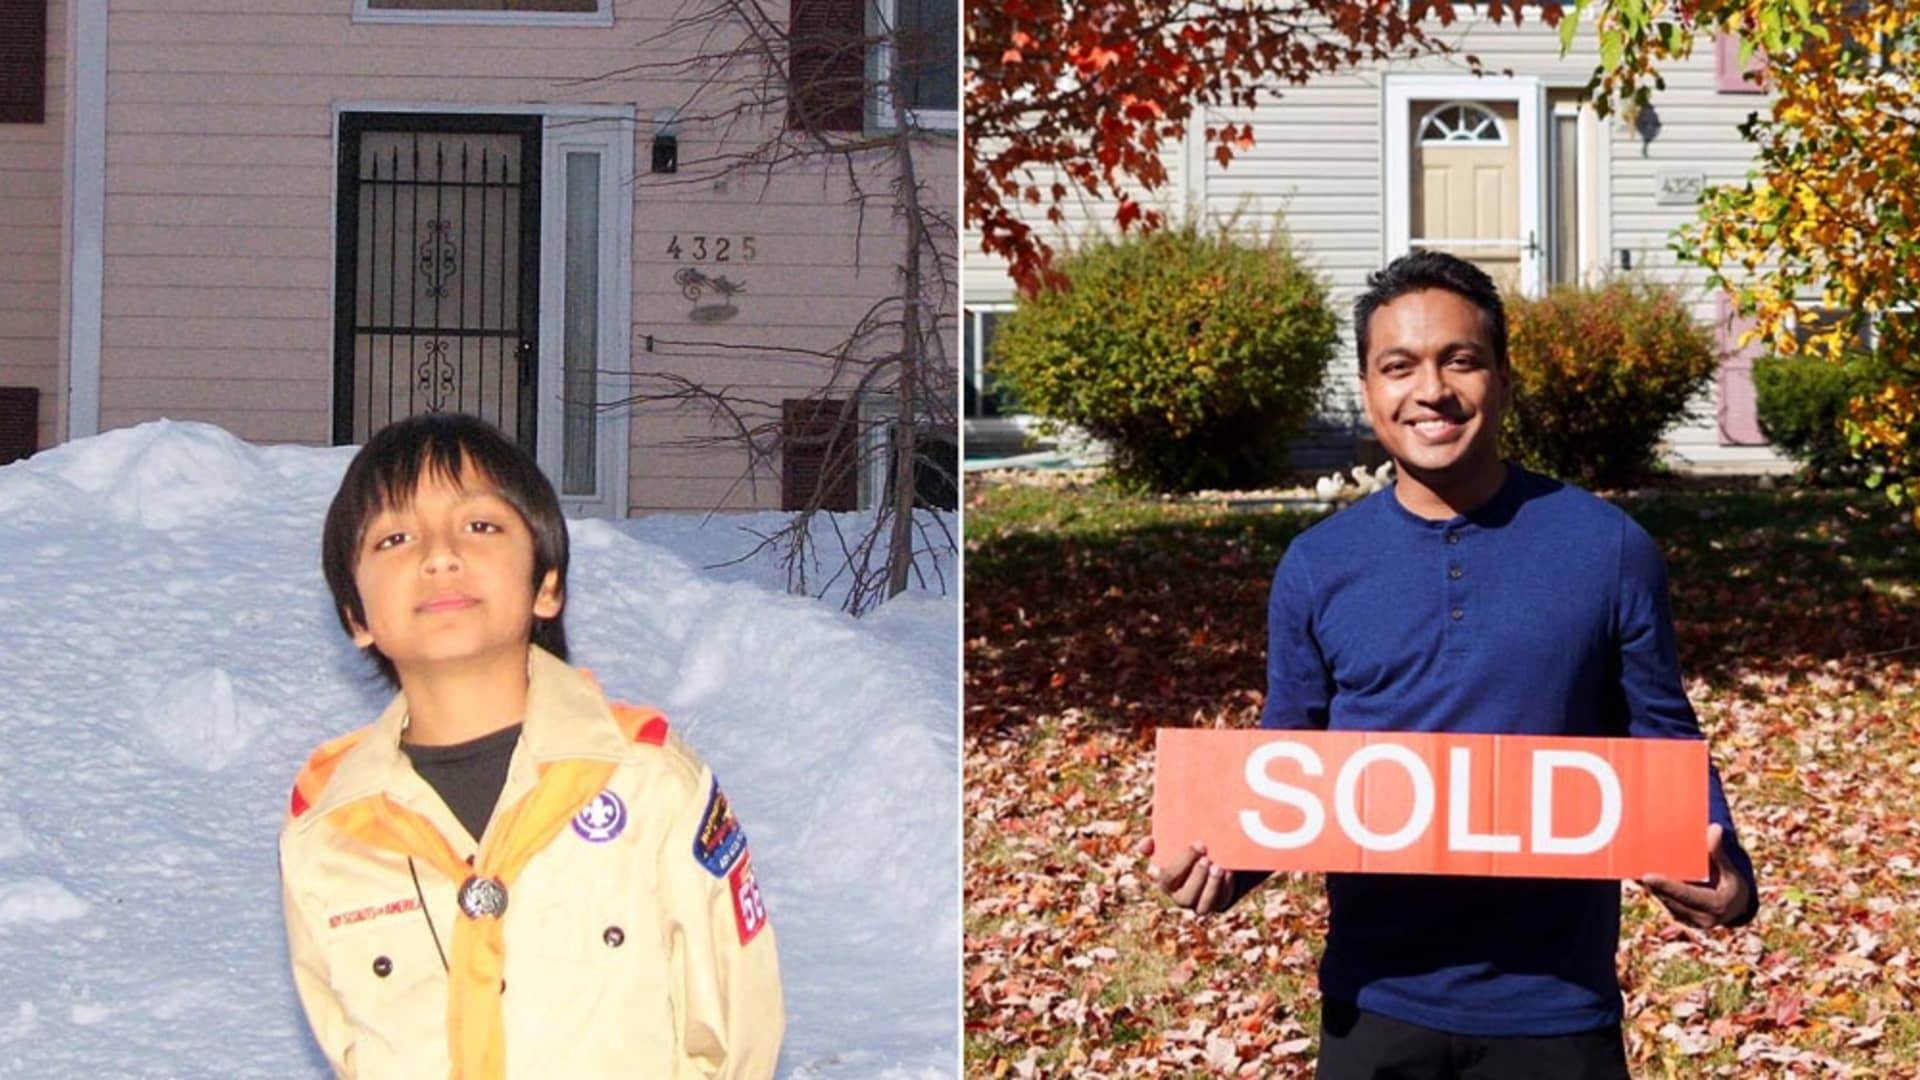 After saving for years, Preenon Huq bought his parents' home in Plymouth, Minnesota at the age of 24.